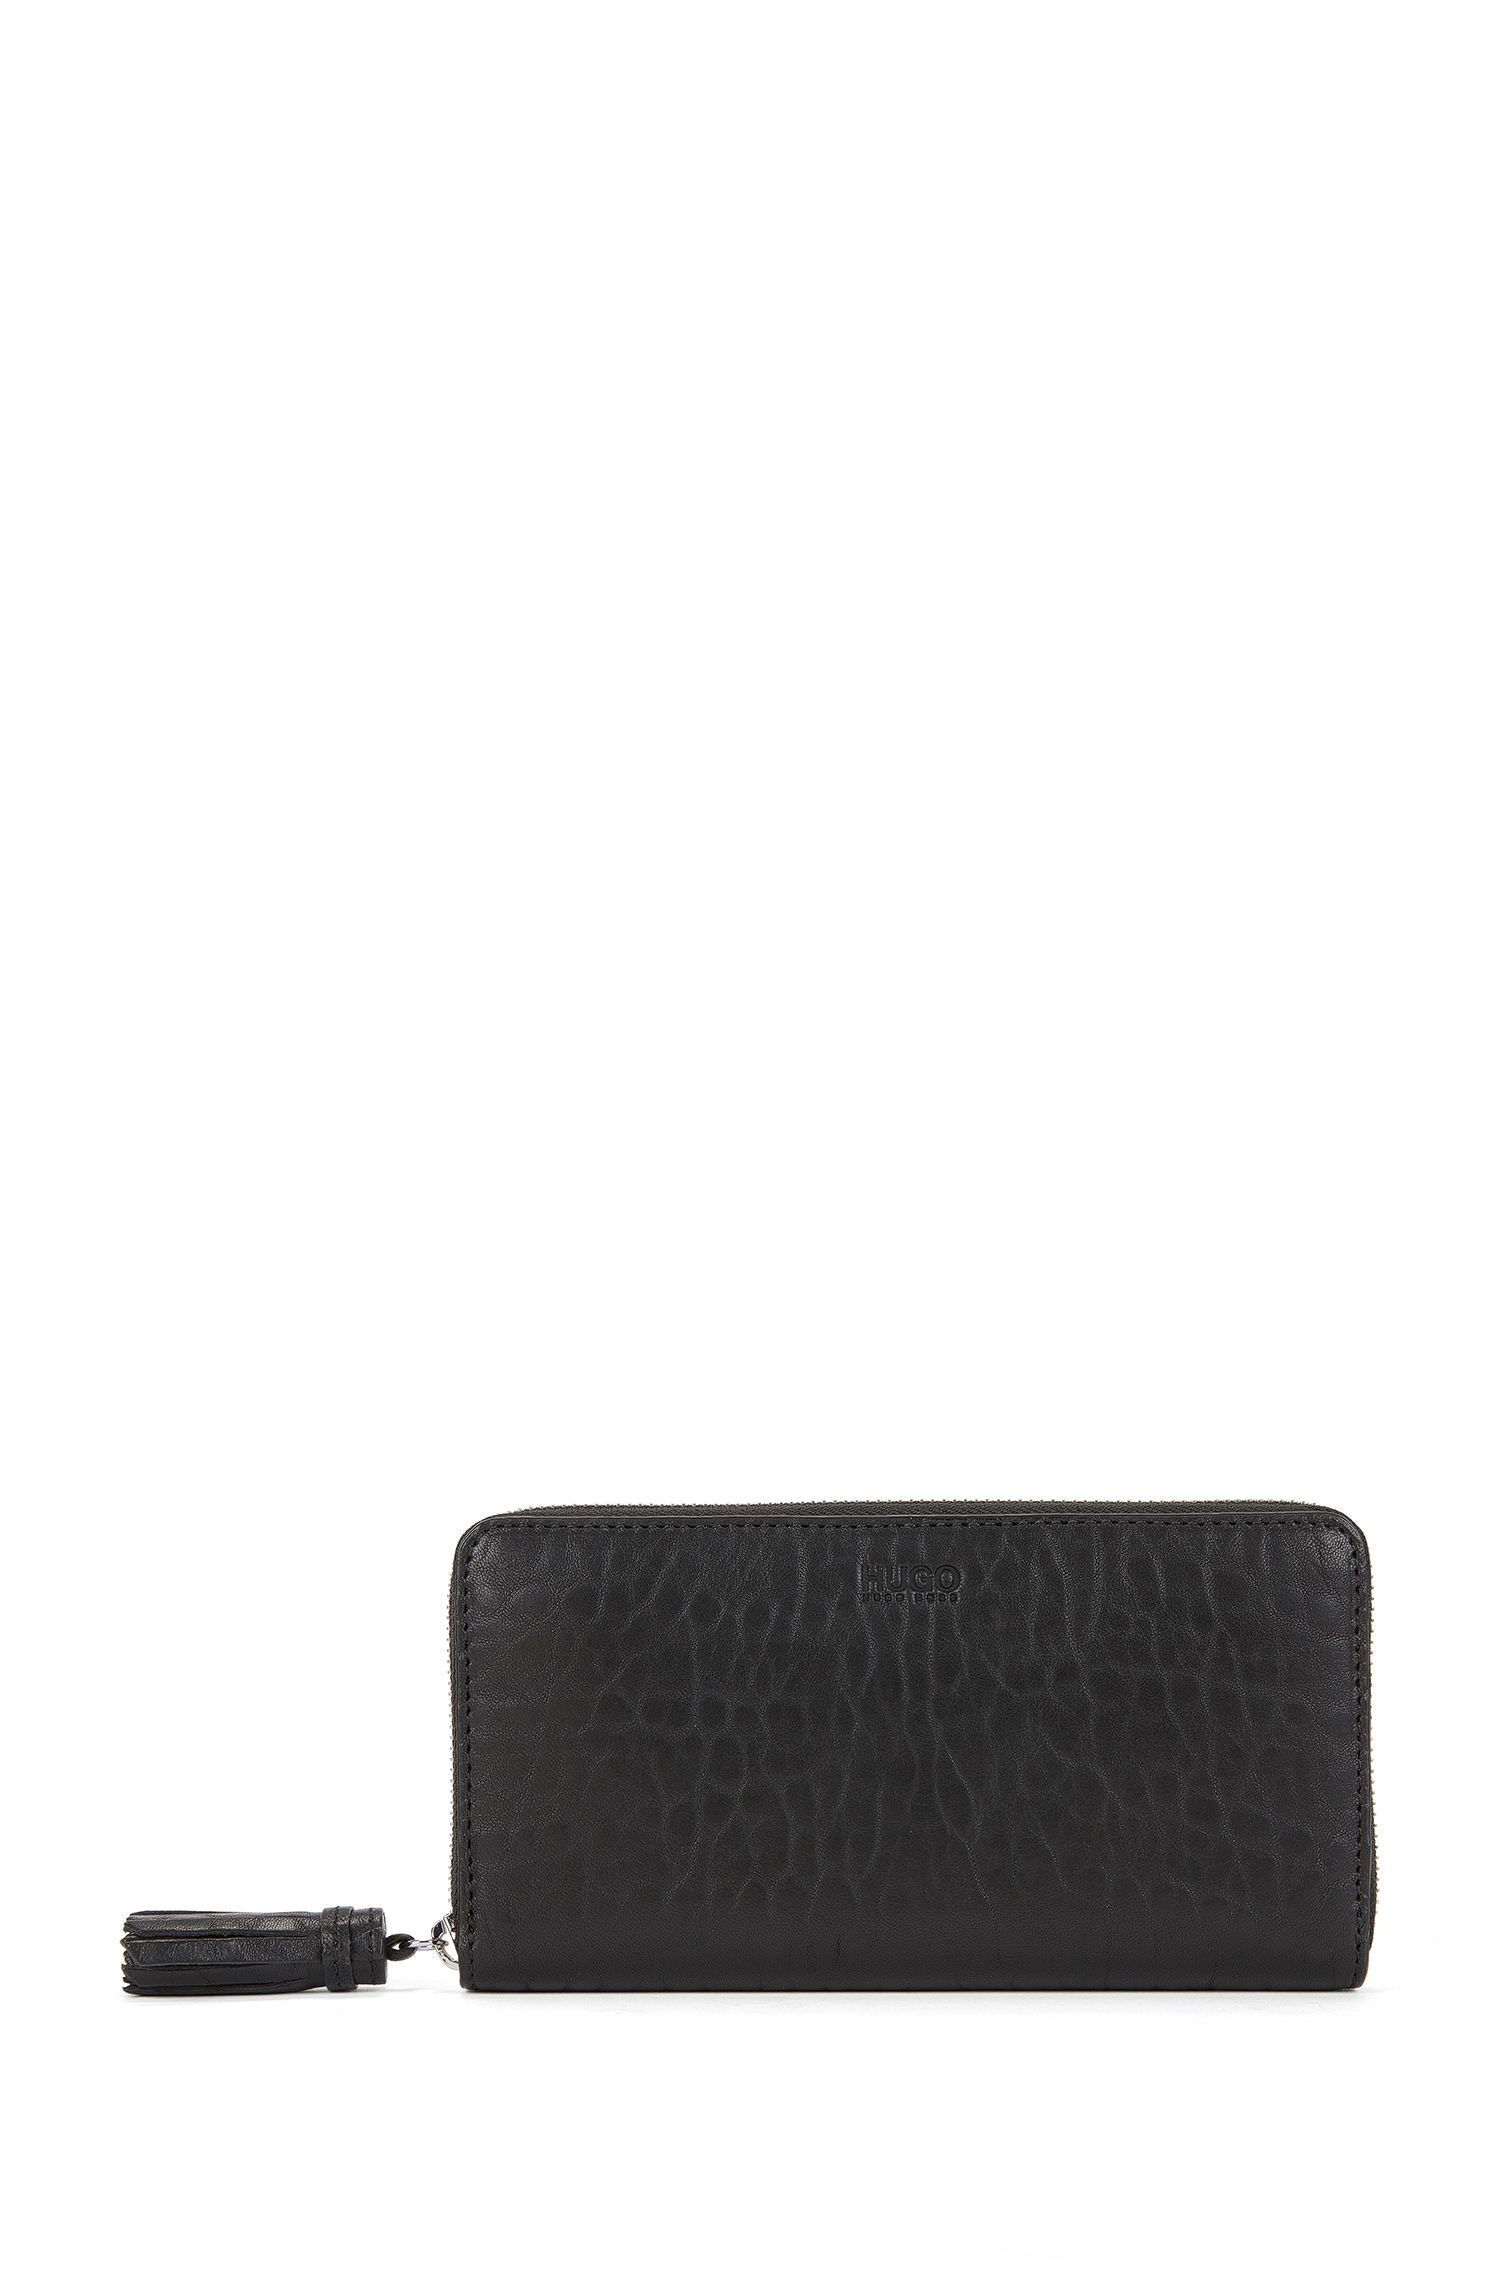 Zip-around wallet in rich leather with tassel